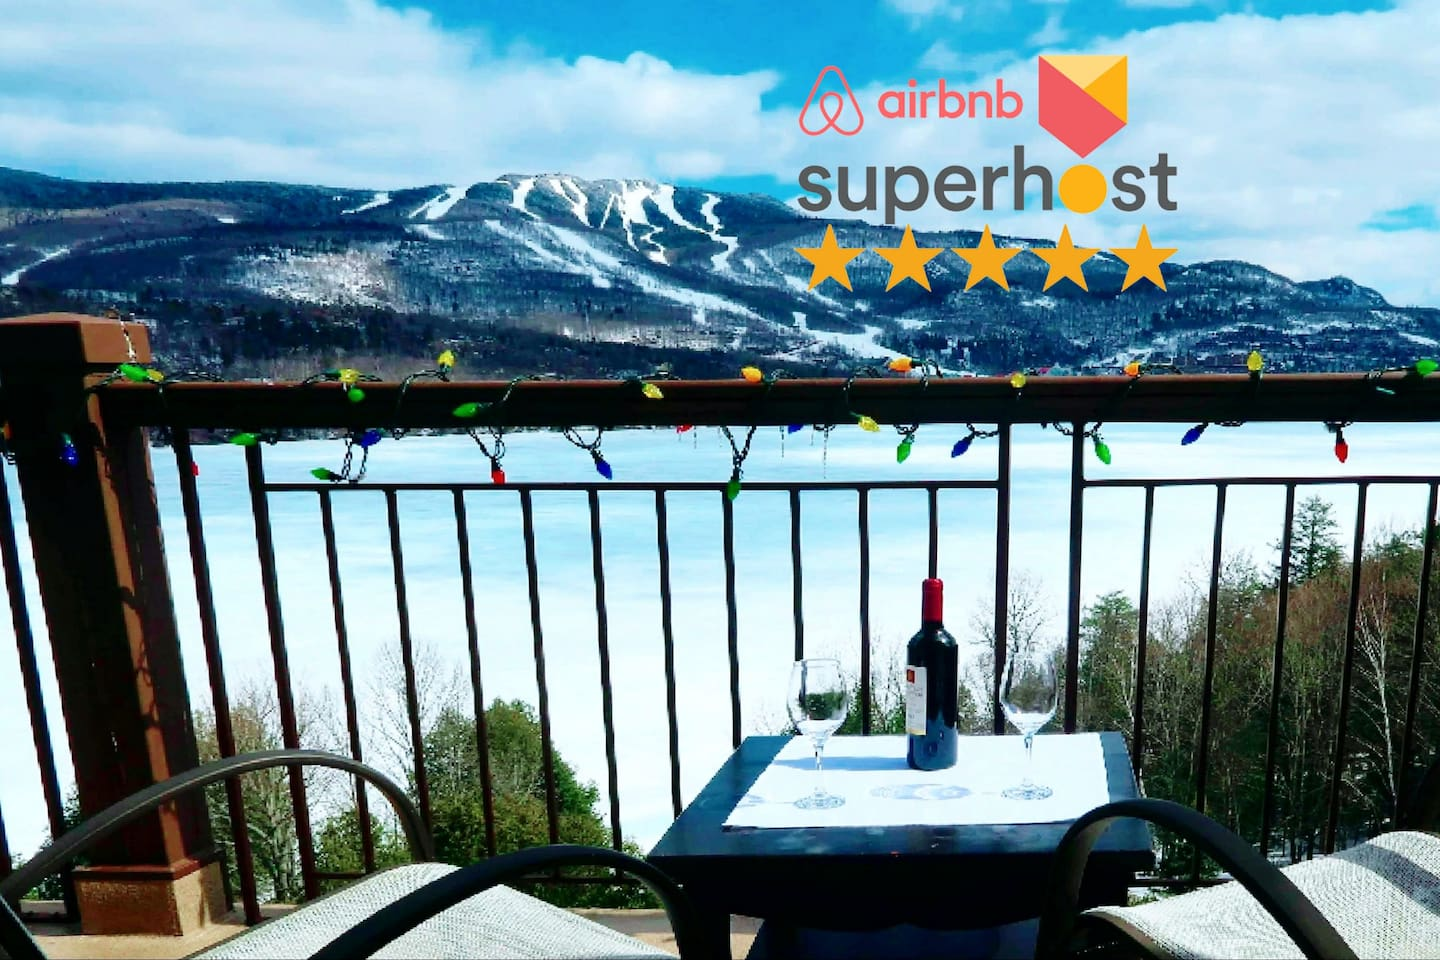 Tanja November 2018 ''Marc deserves his title as Superhost. Although we would rather keep it this little gem to ourselves, the condo is amazing. The view is breathtaking. There is a big balcony. We had everything we needed. Thank you, Marc!''